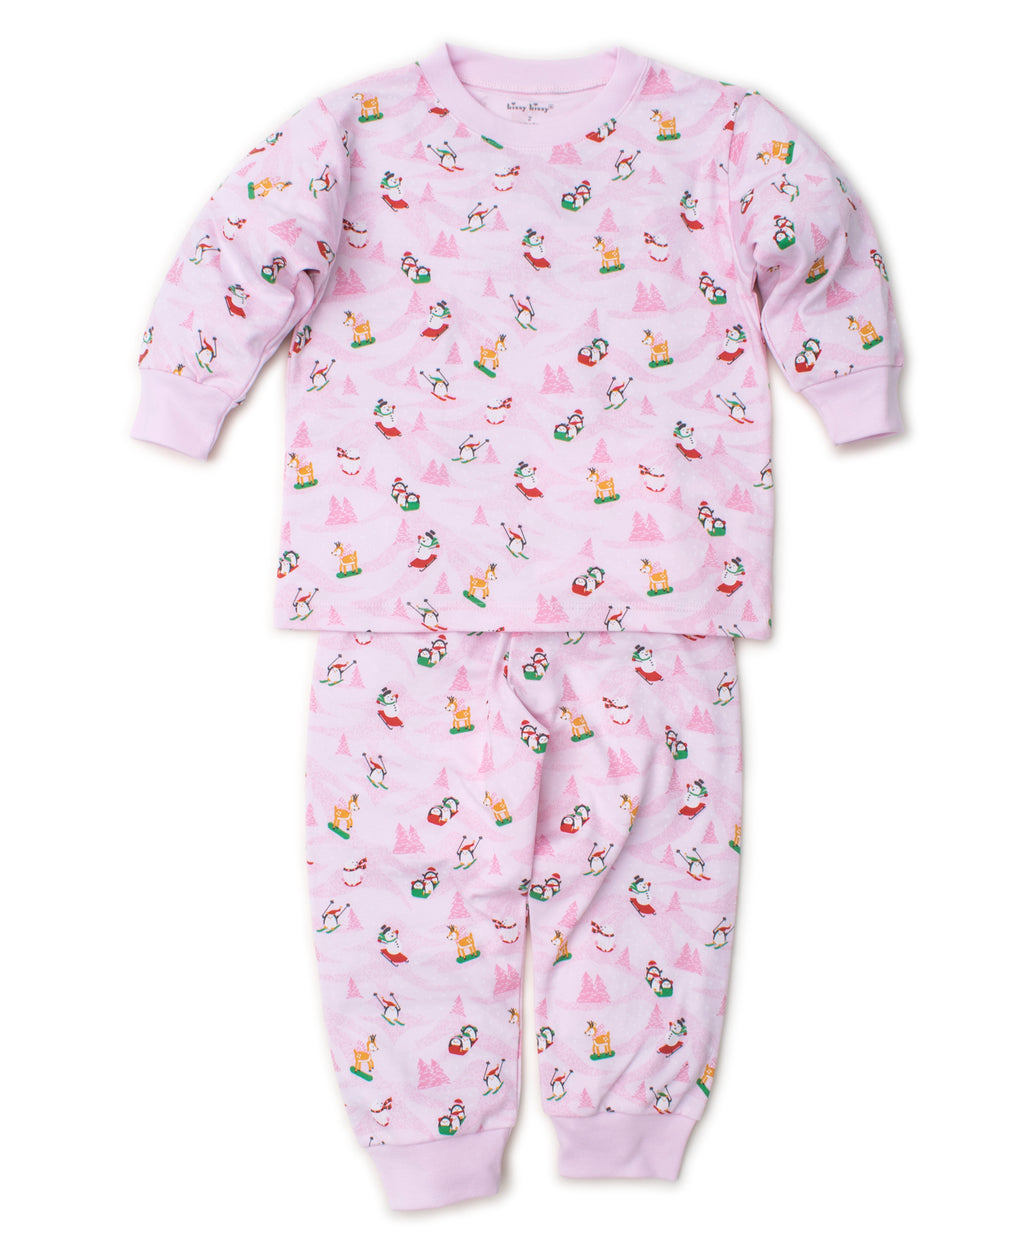 Frosty Friends Pink Toddler Pajama Set